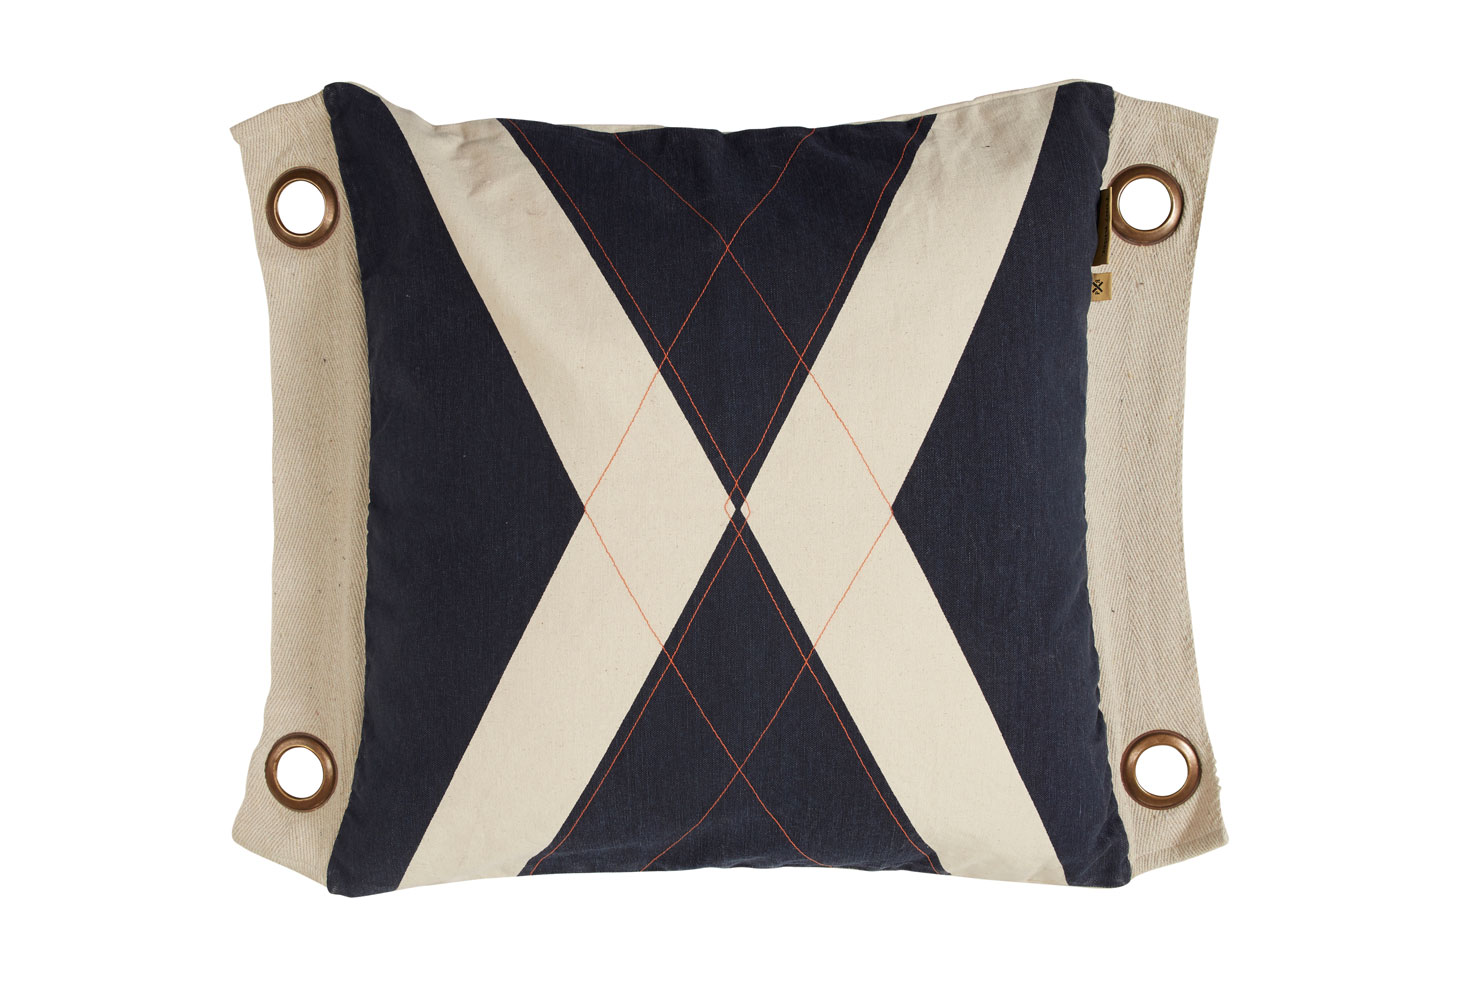 World Flag Cushion - Black